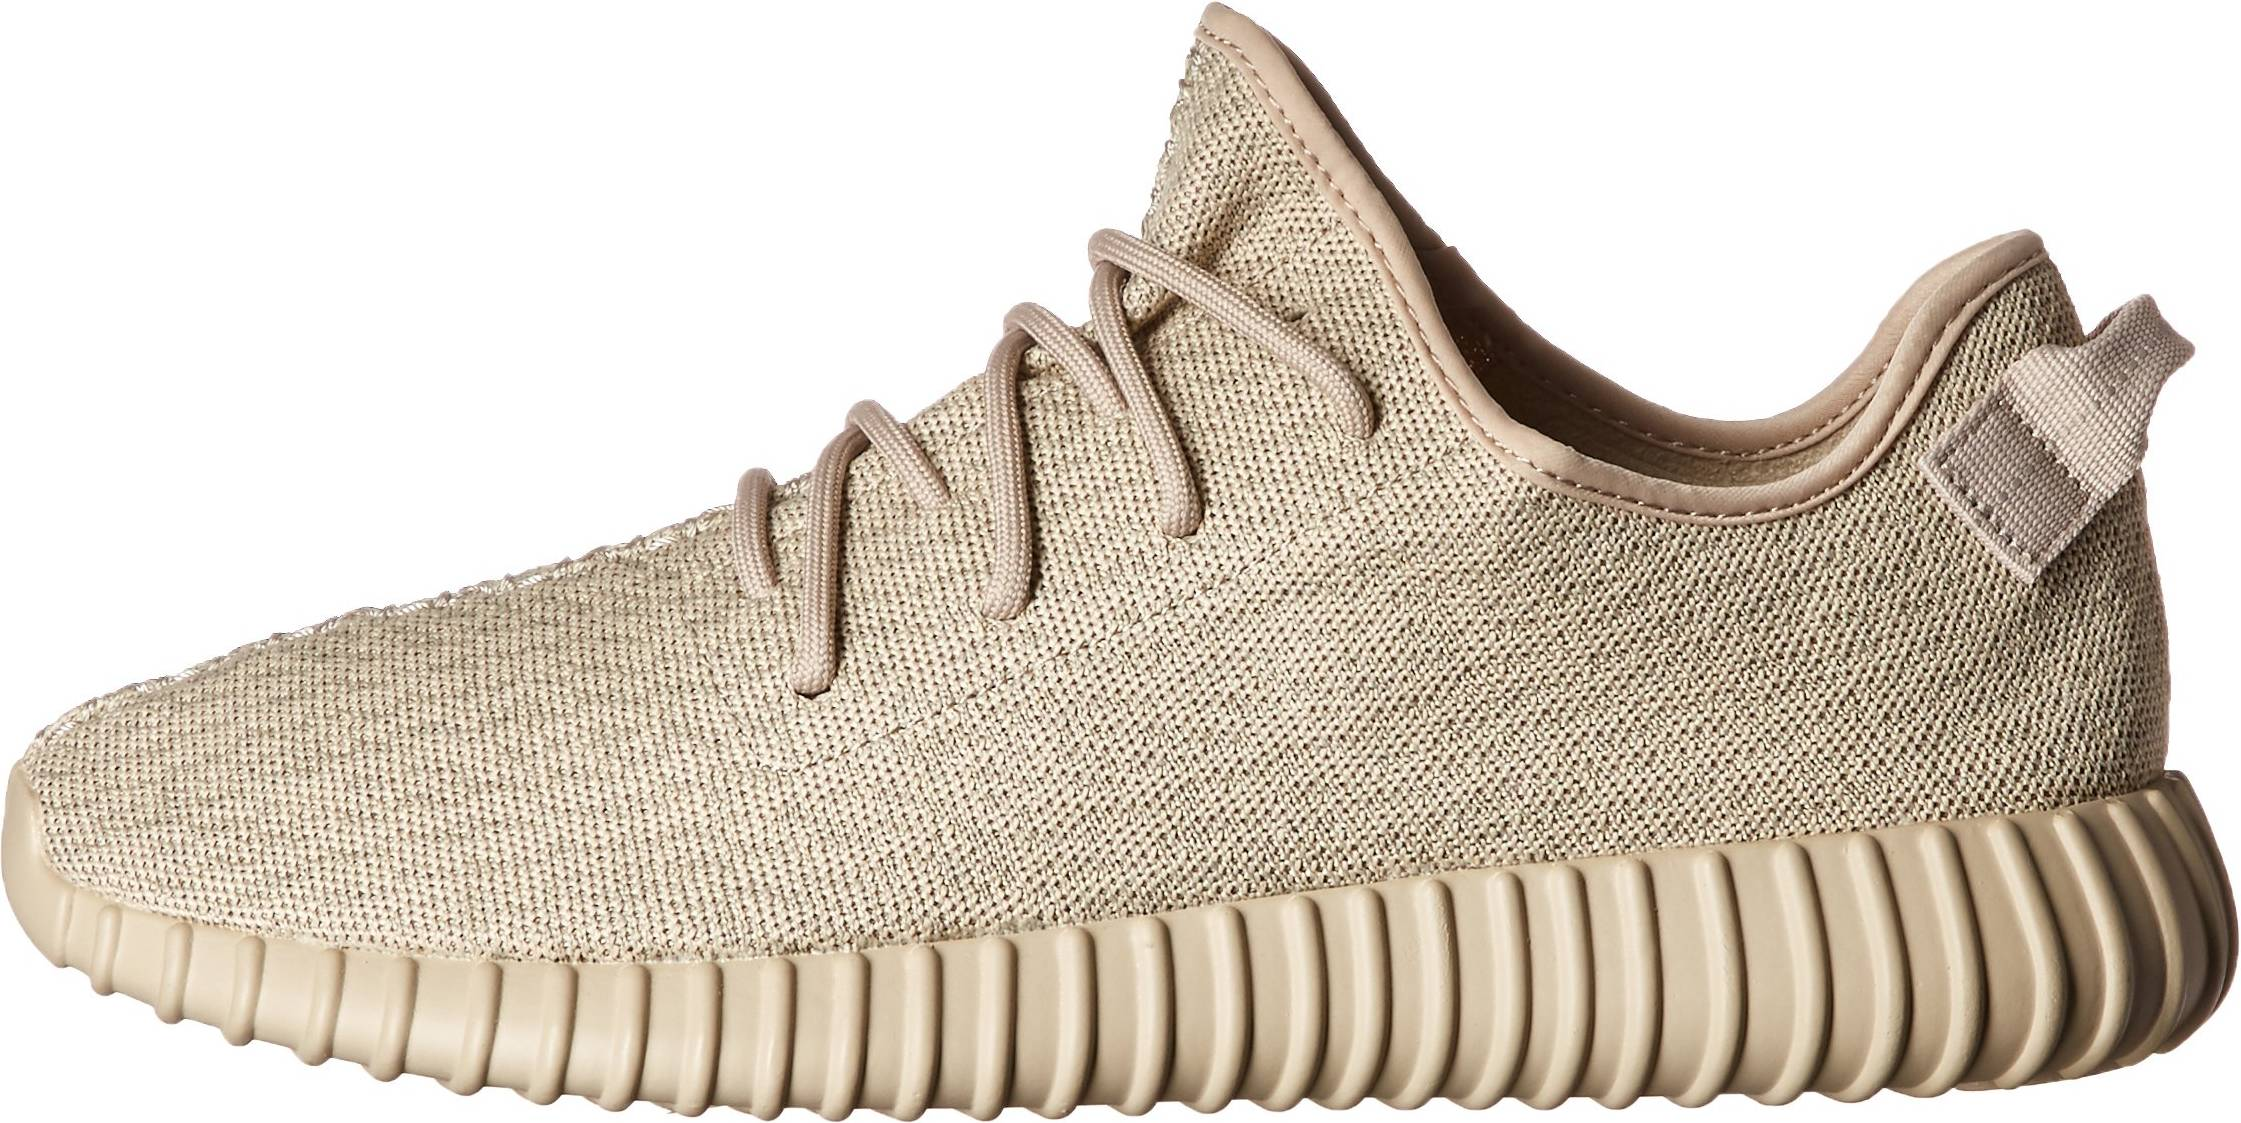 $299 + Review of Adidas Yeezy 350 Boost